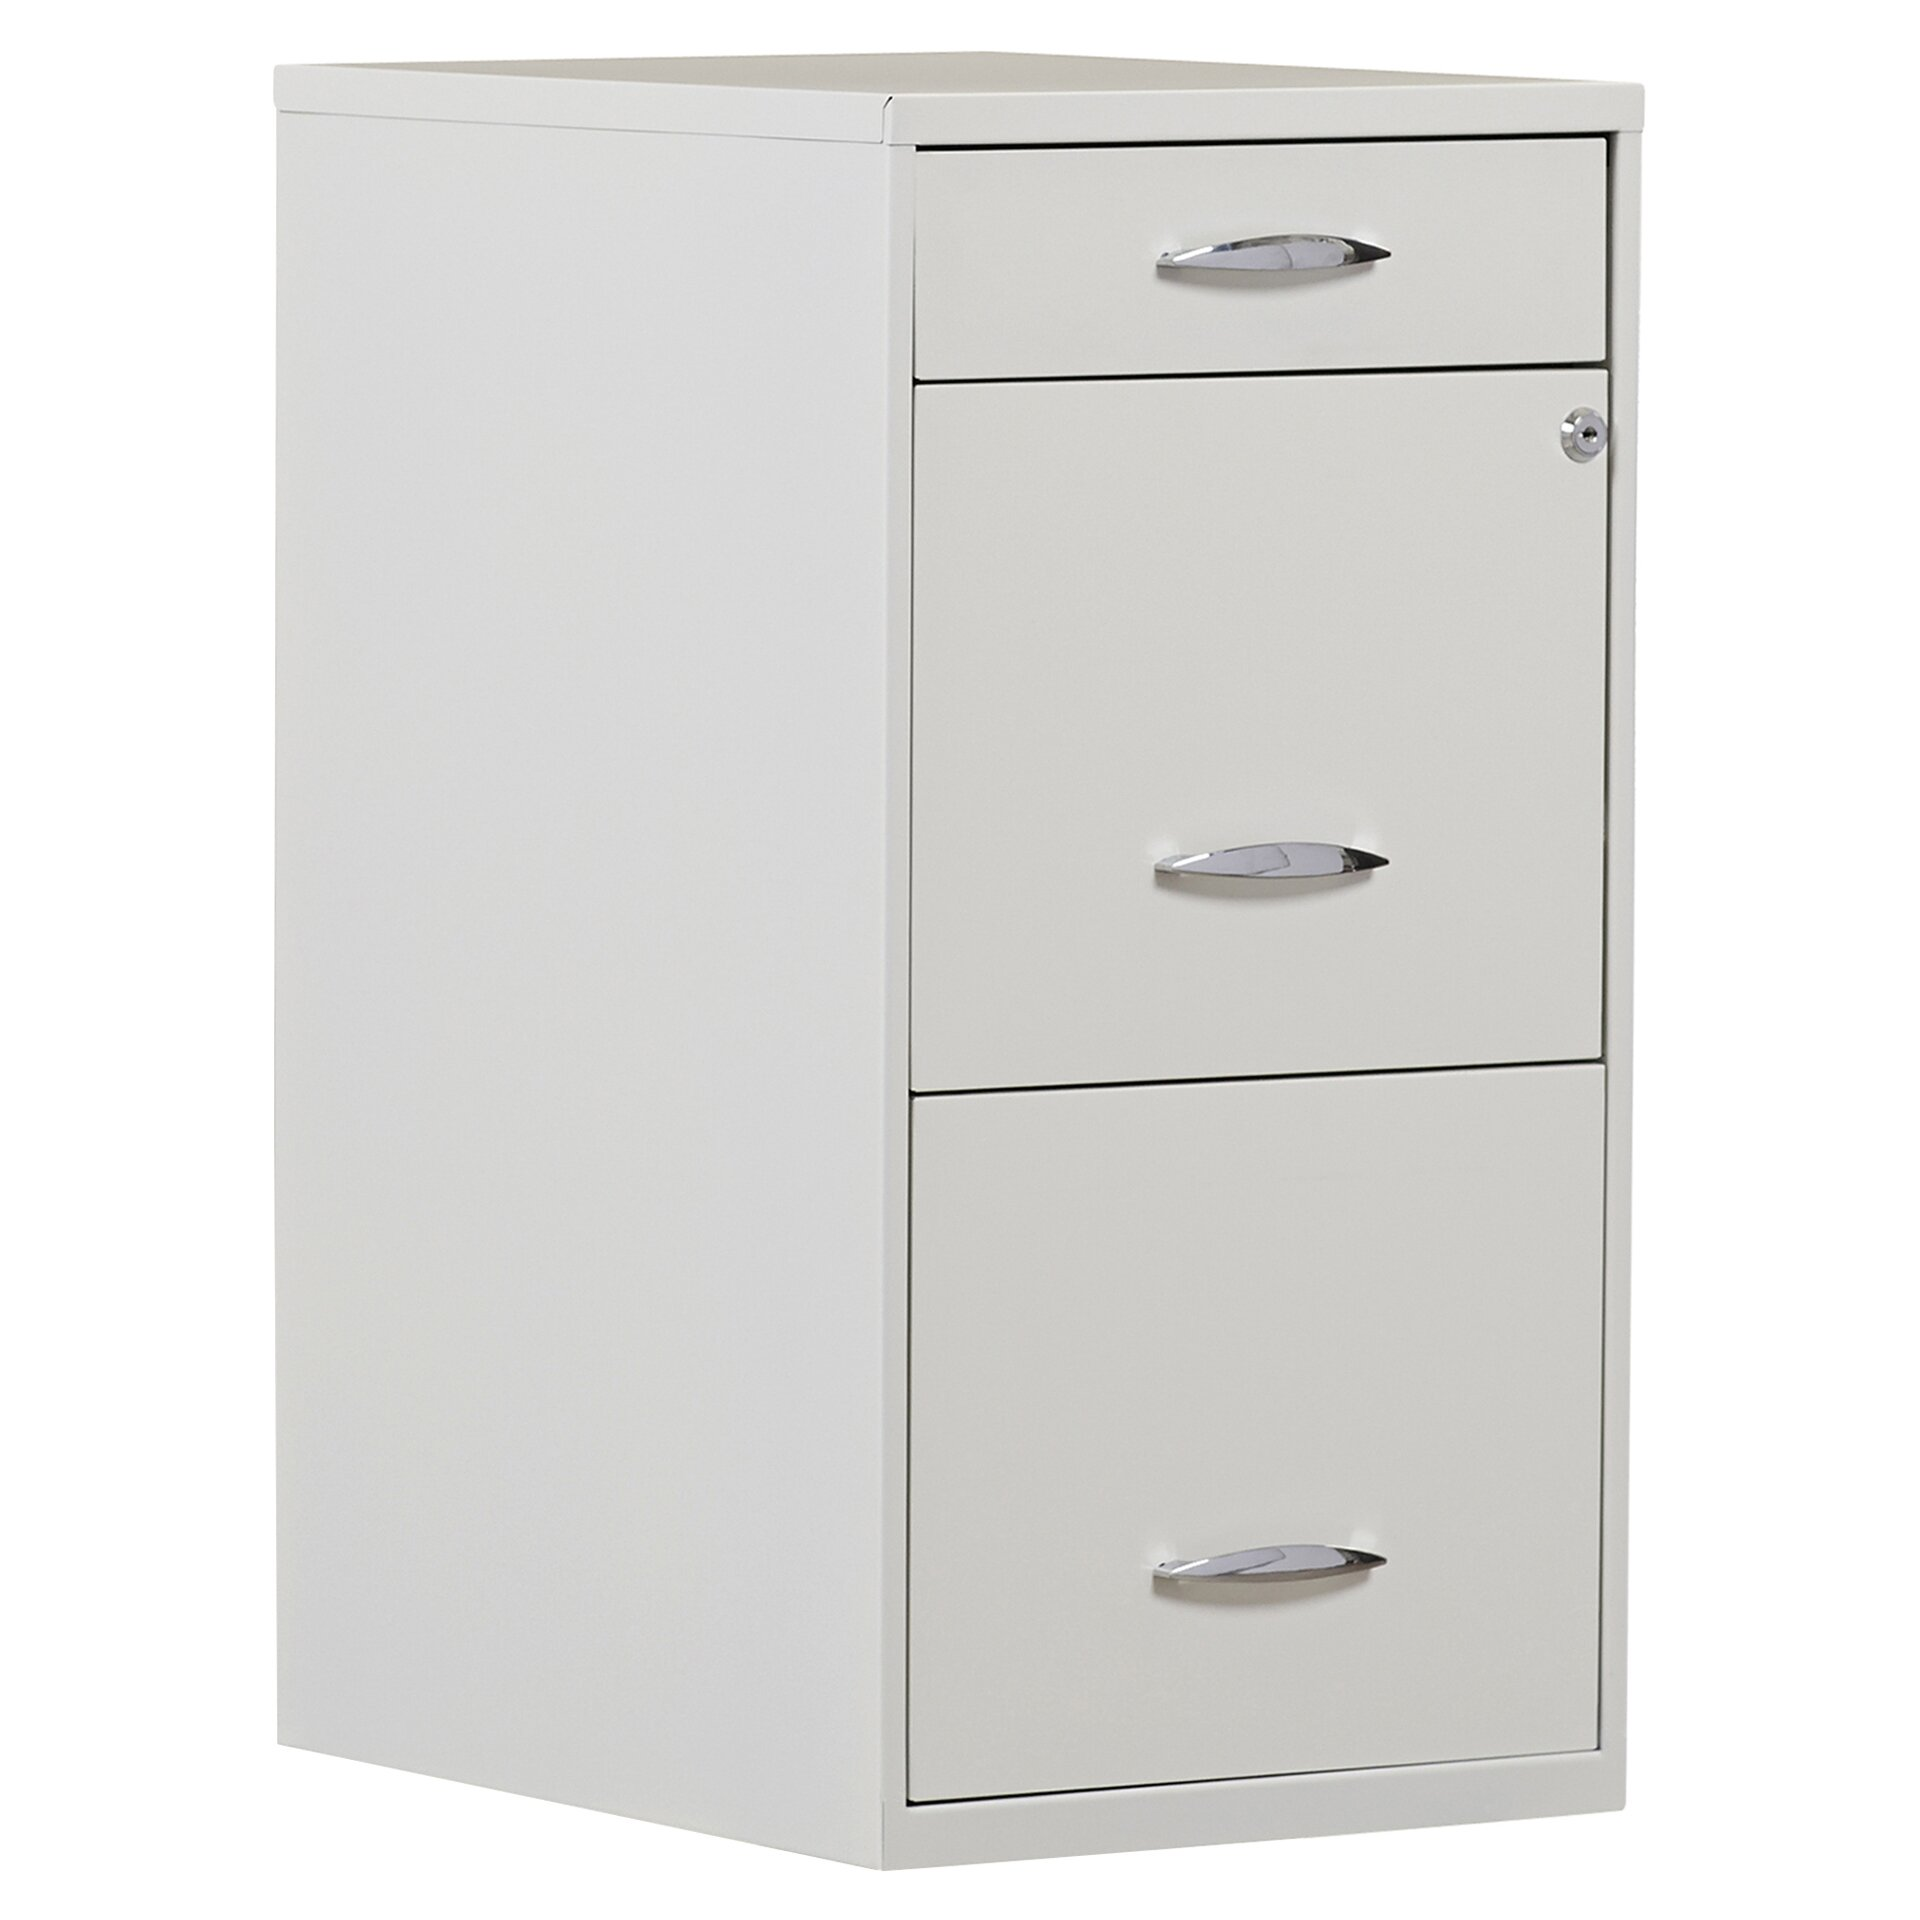 File Cabinet Symple Stuff Steel 3 Drawer Filing Cabinet Reviews Wayfair